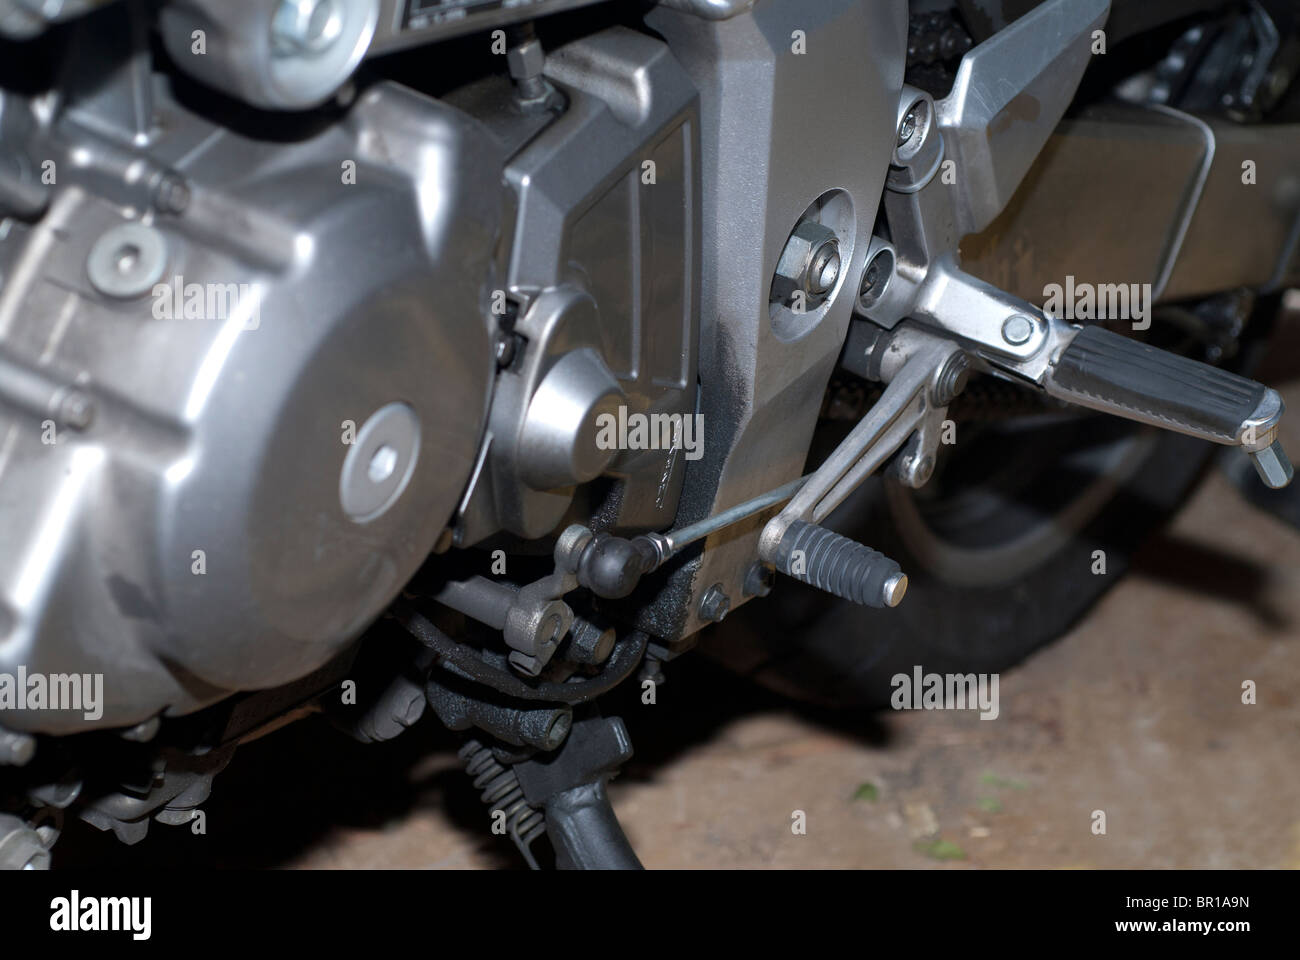 Motorcycle Gear Lever - Stock Image